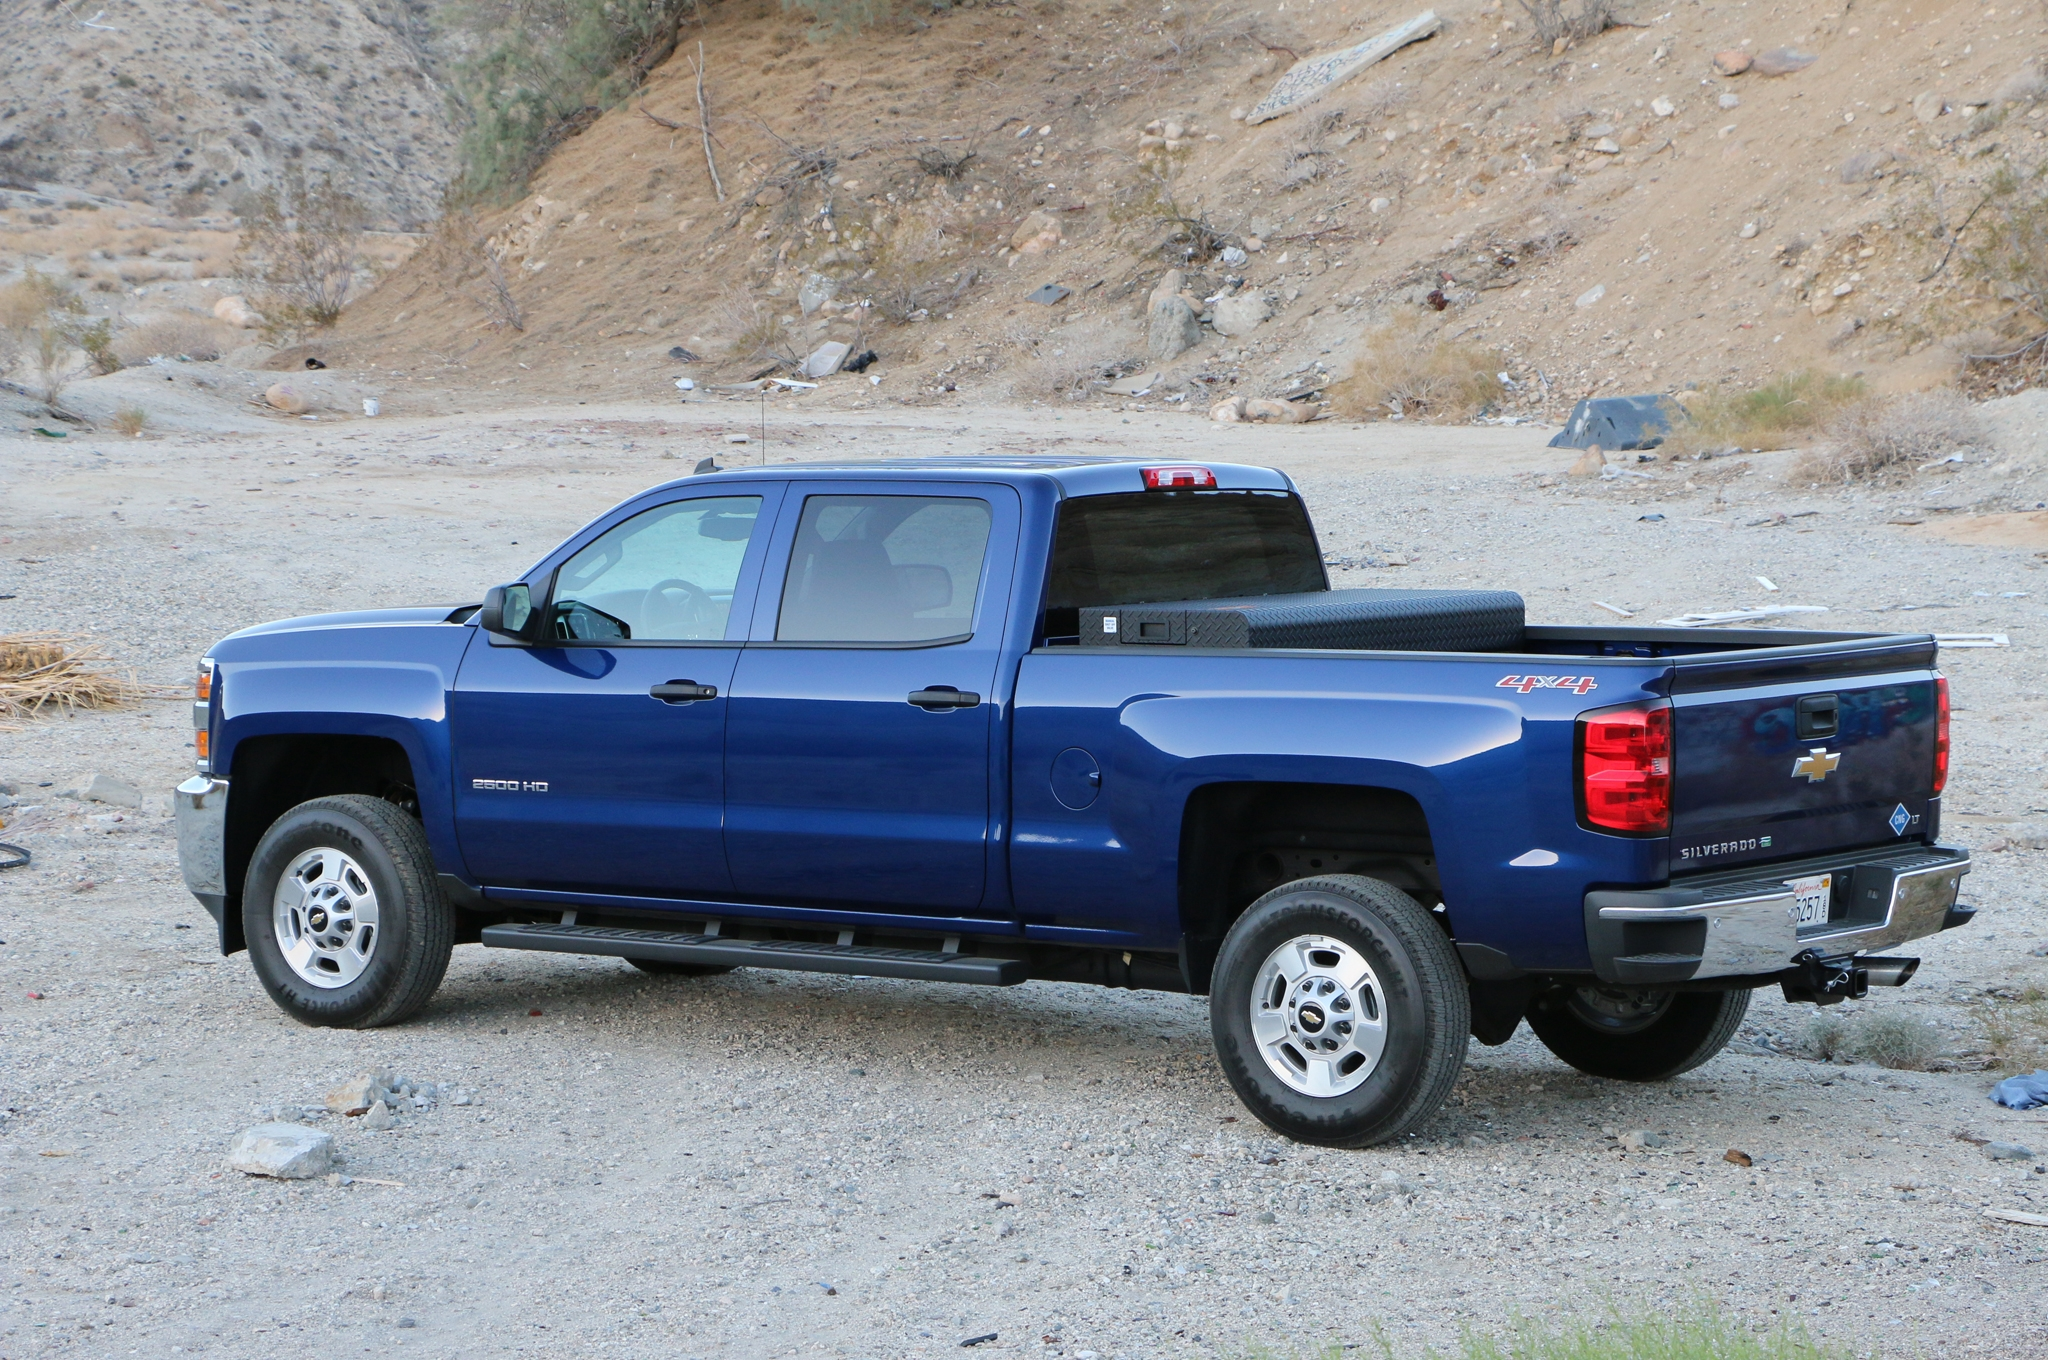 3dtuning of chevrolet silverado 2500hd crew cab long truck 2015 unique on line. Black Bedroom Furniture Sets. Home Design Ideas